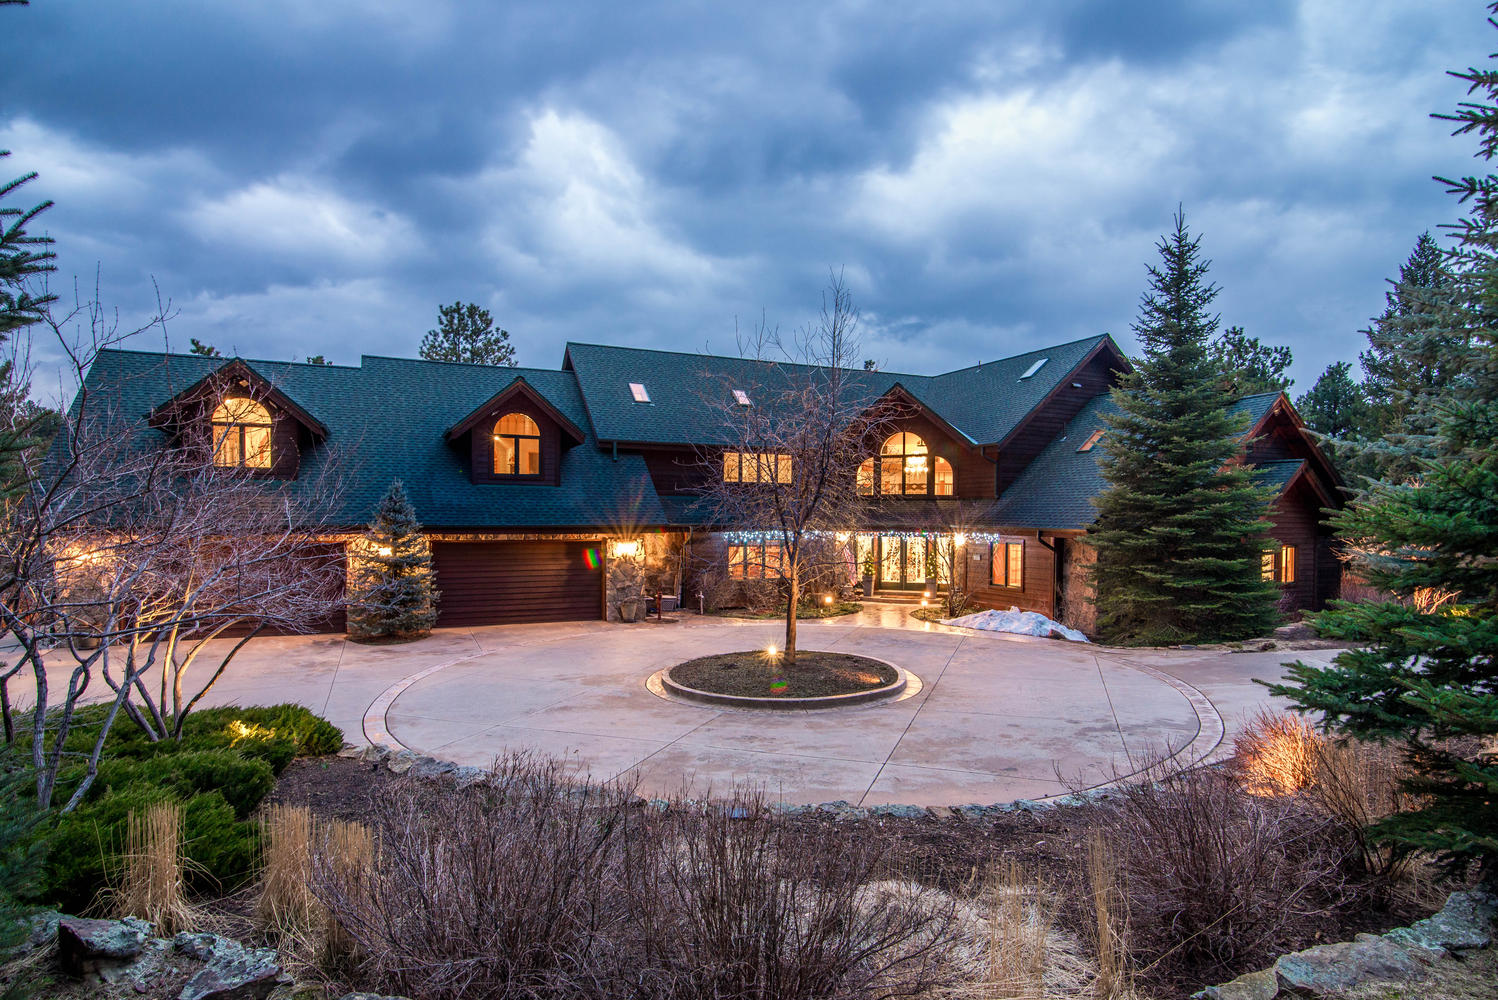 Moradia para Venda às Majestic Estate Nestled on 42.42 Acres 28775 Cragmont Drive Evergreen, Colorado, 80439 Estados Unidos